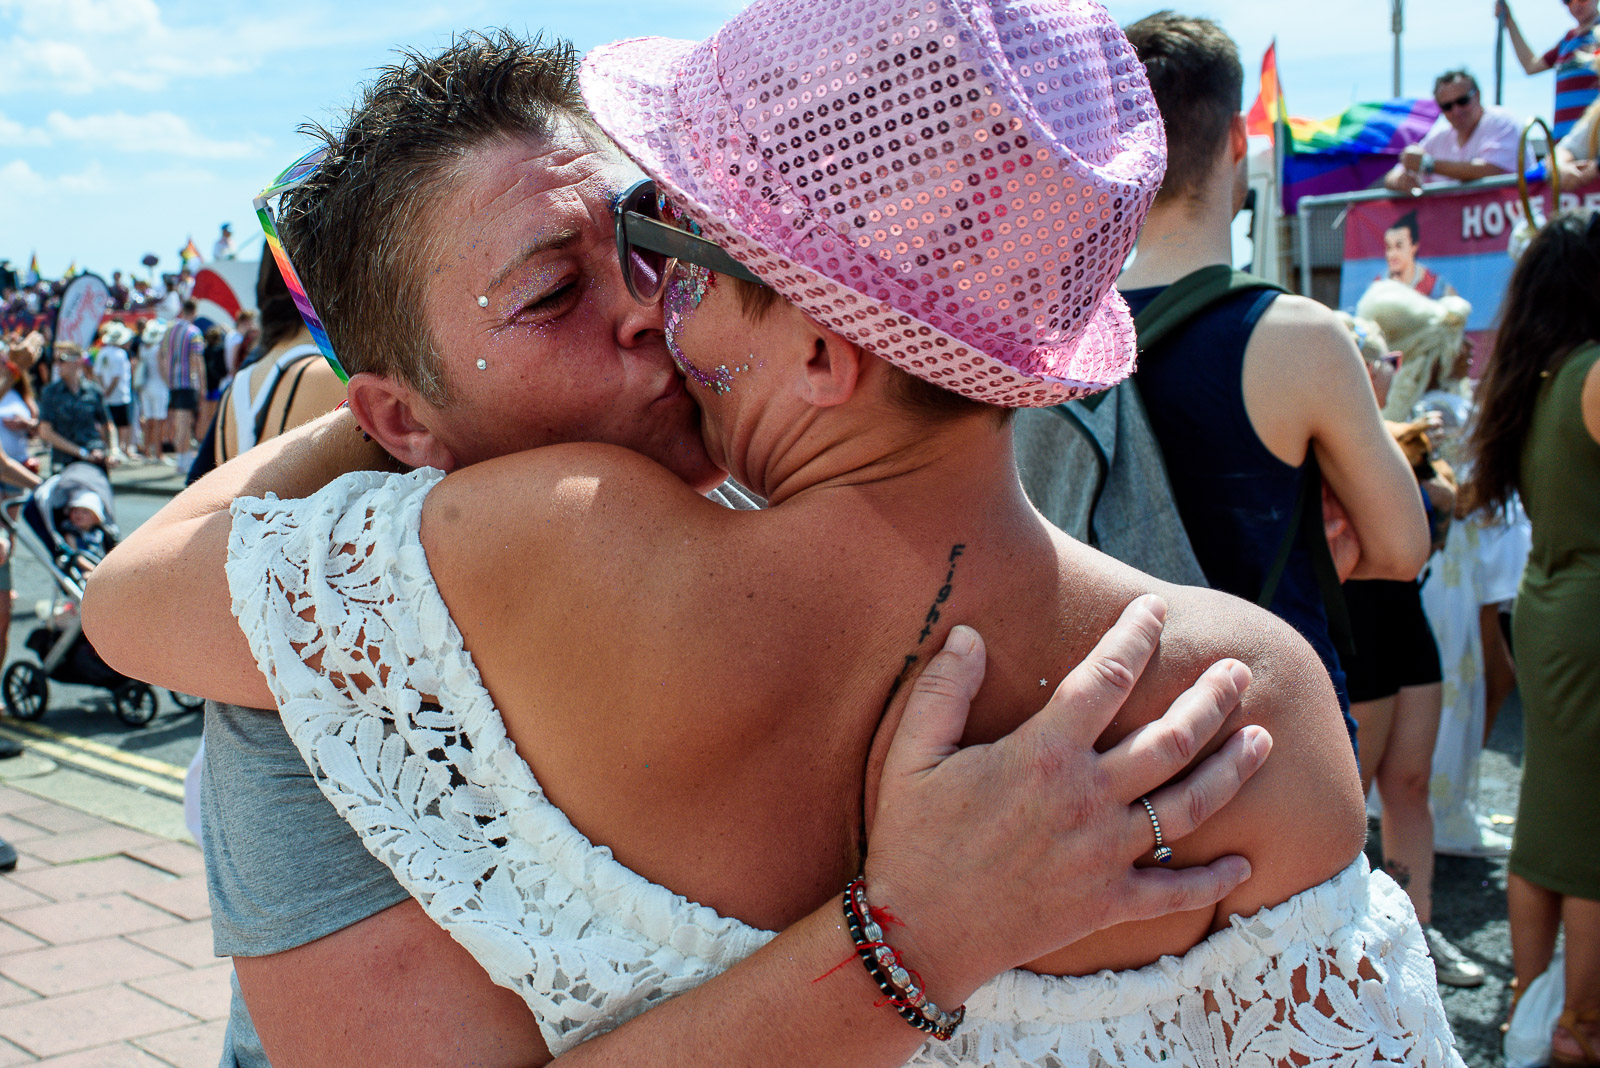 Girls kissing while attending Brighton Pride Parade